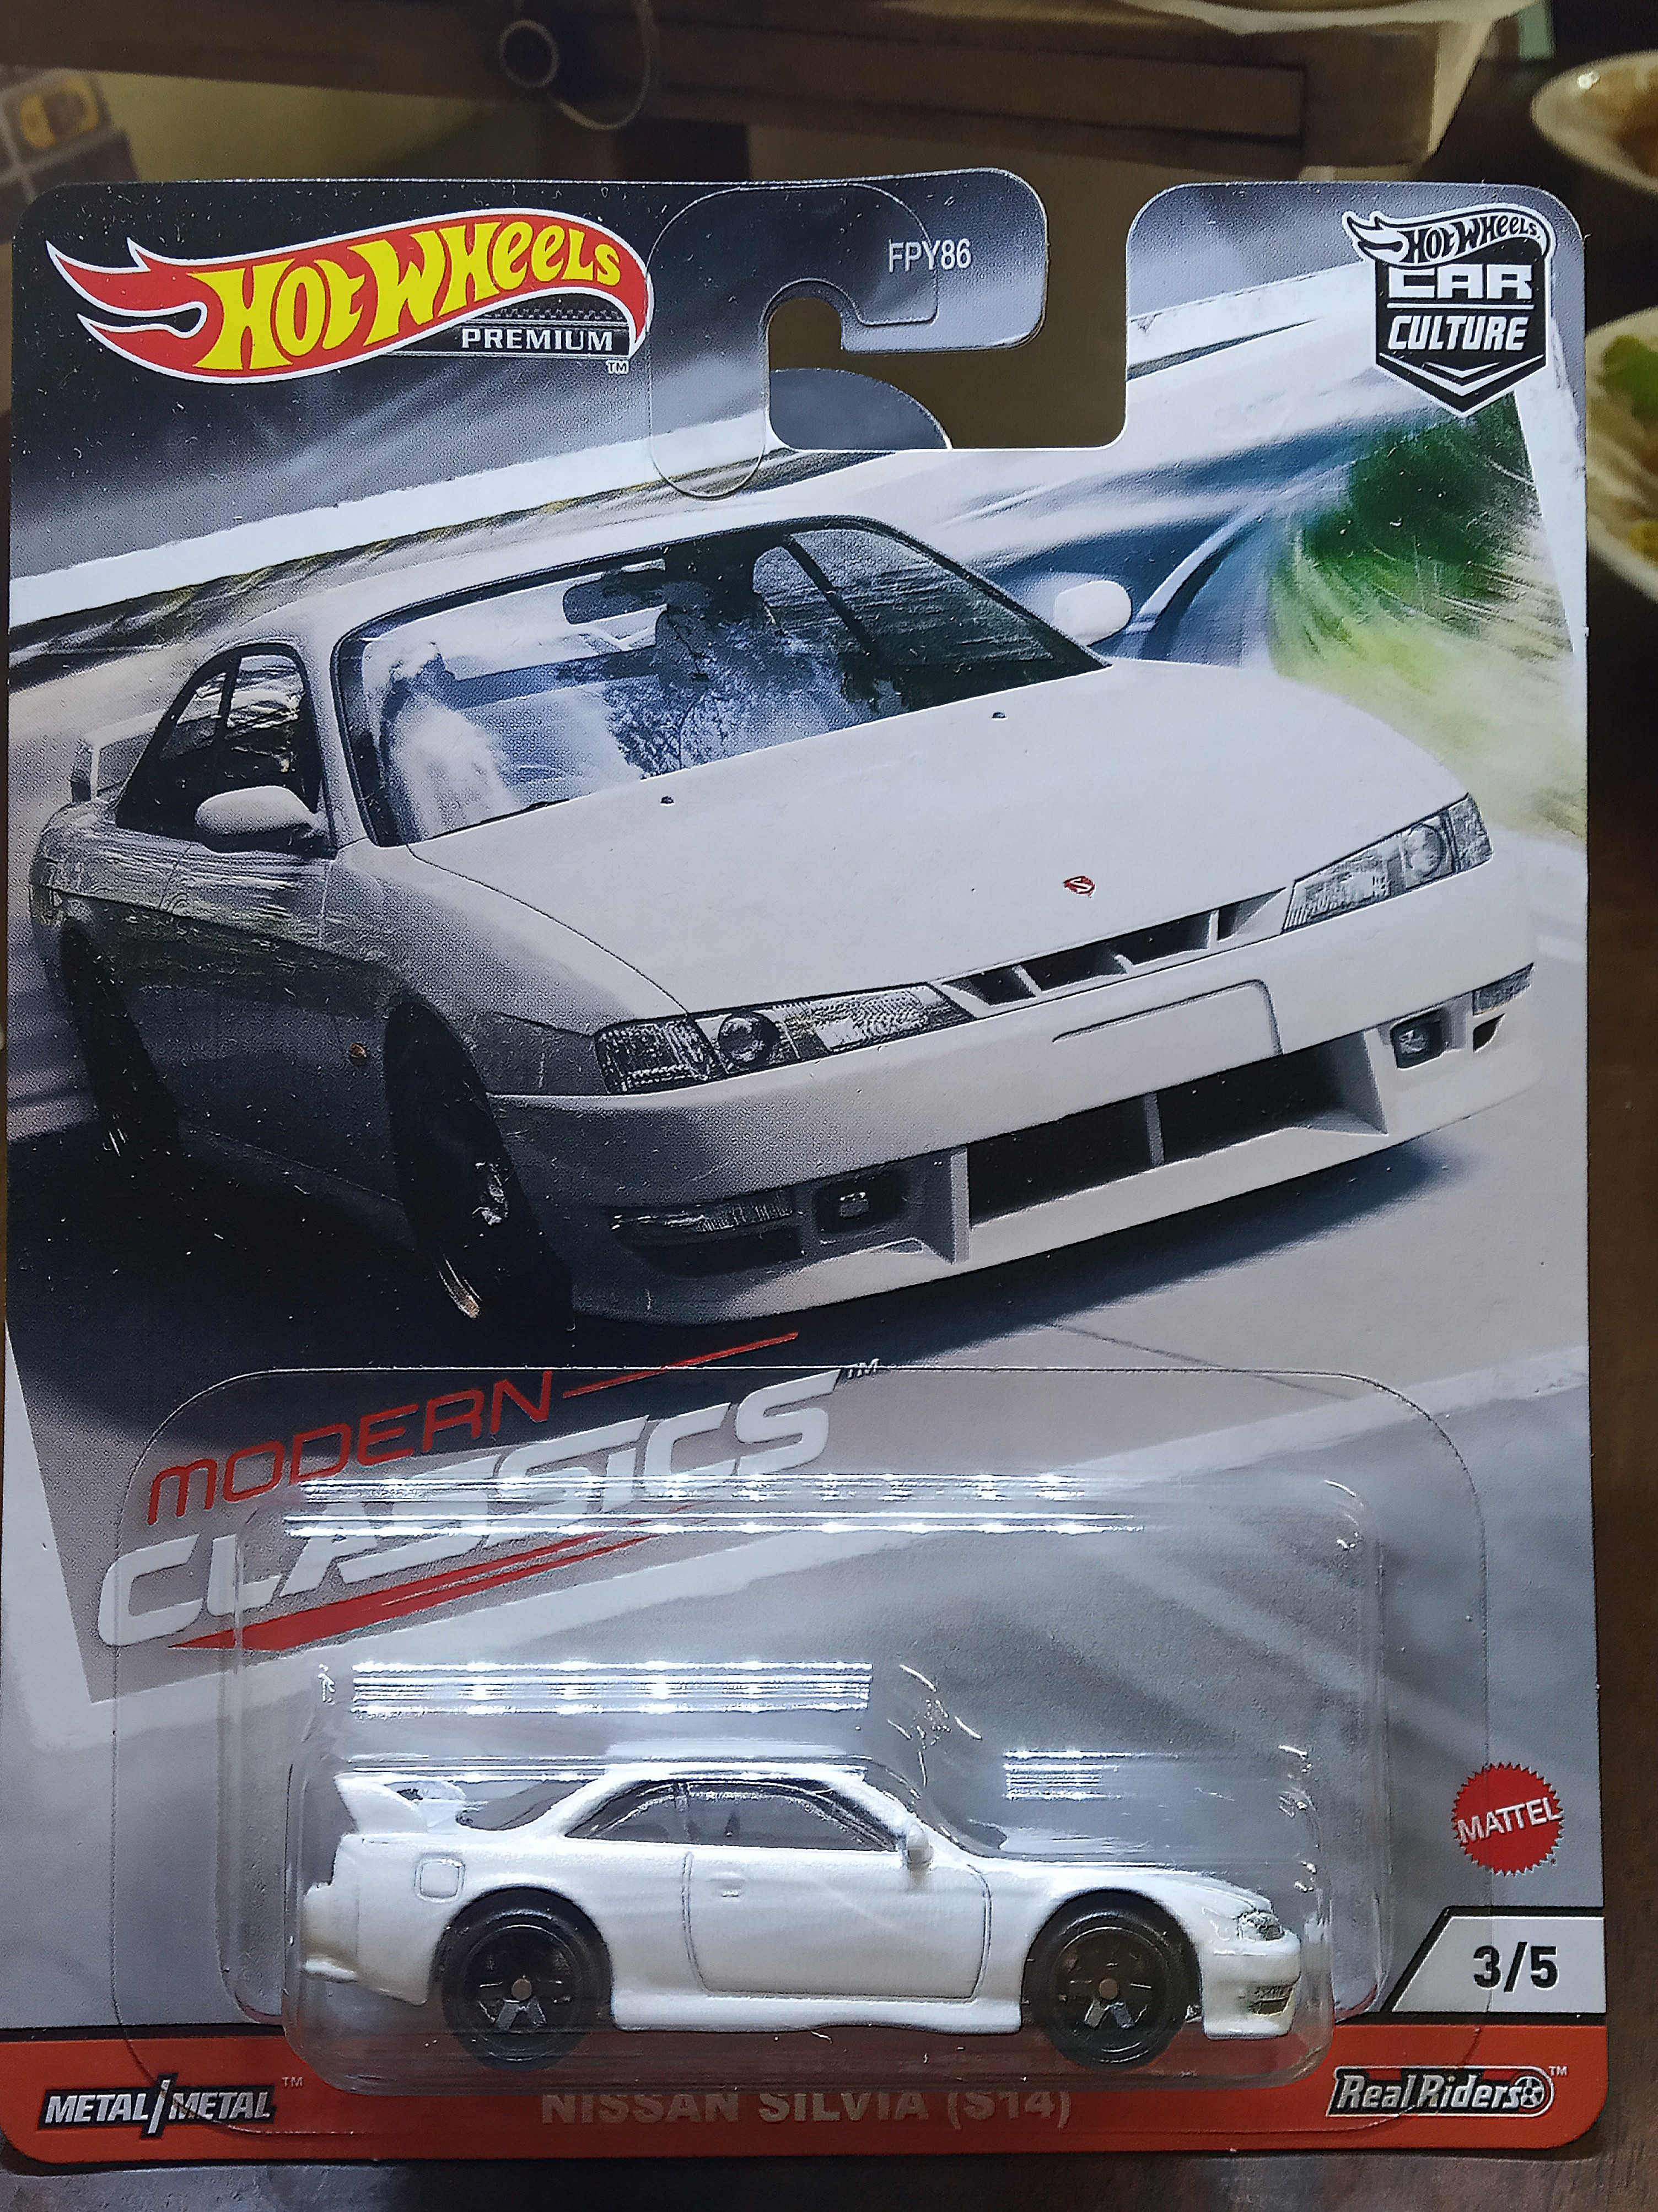 Hot Wheels 2020 Modern Classics 3 5 Nissan Silvia S14 White Toys Games Diecast Toy Vehicles On Carousell